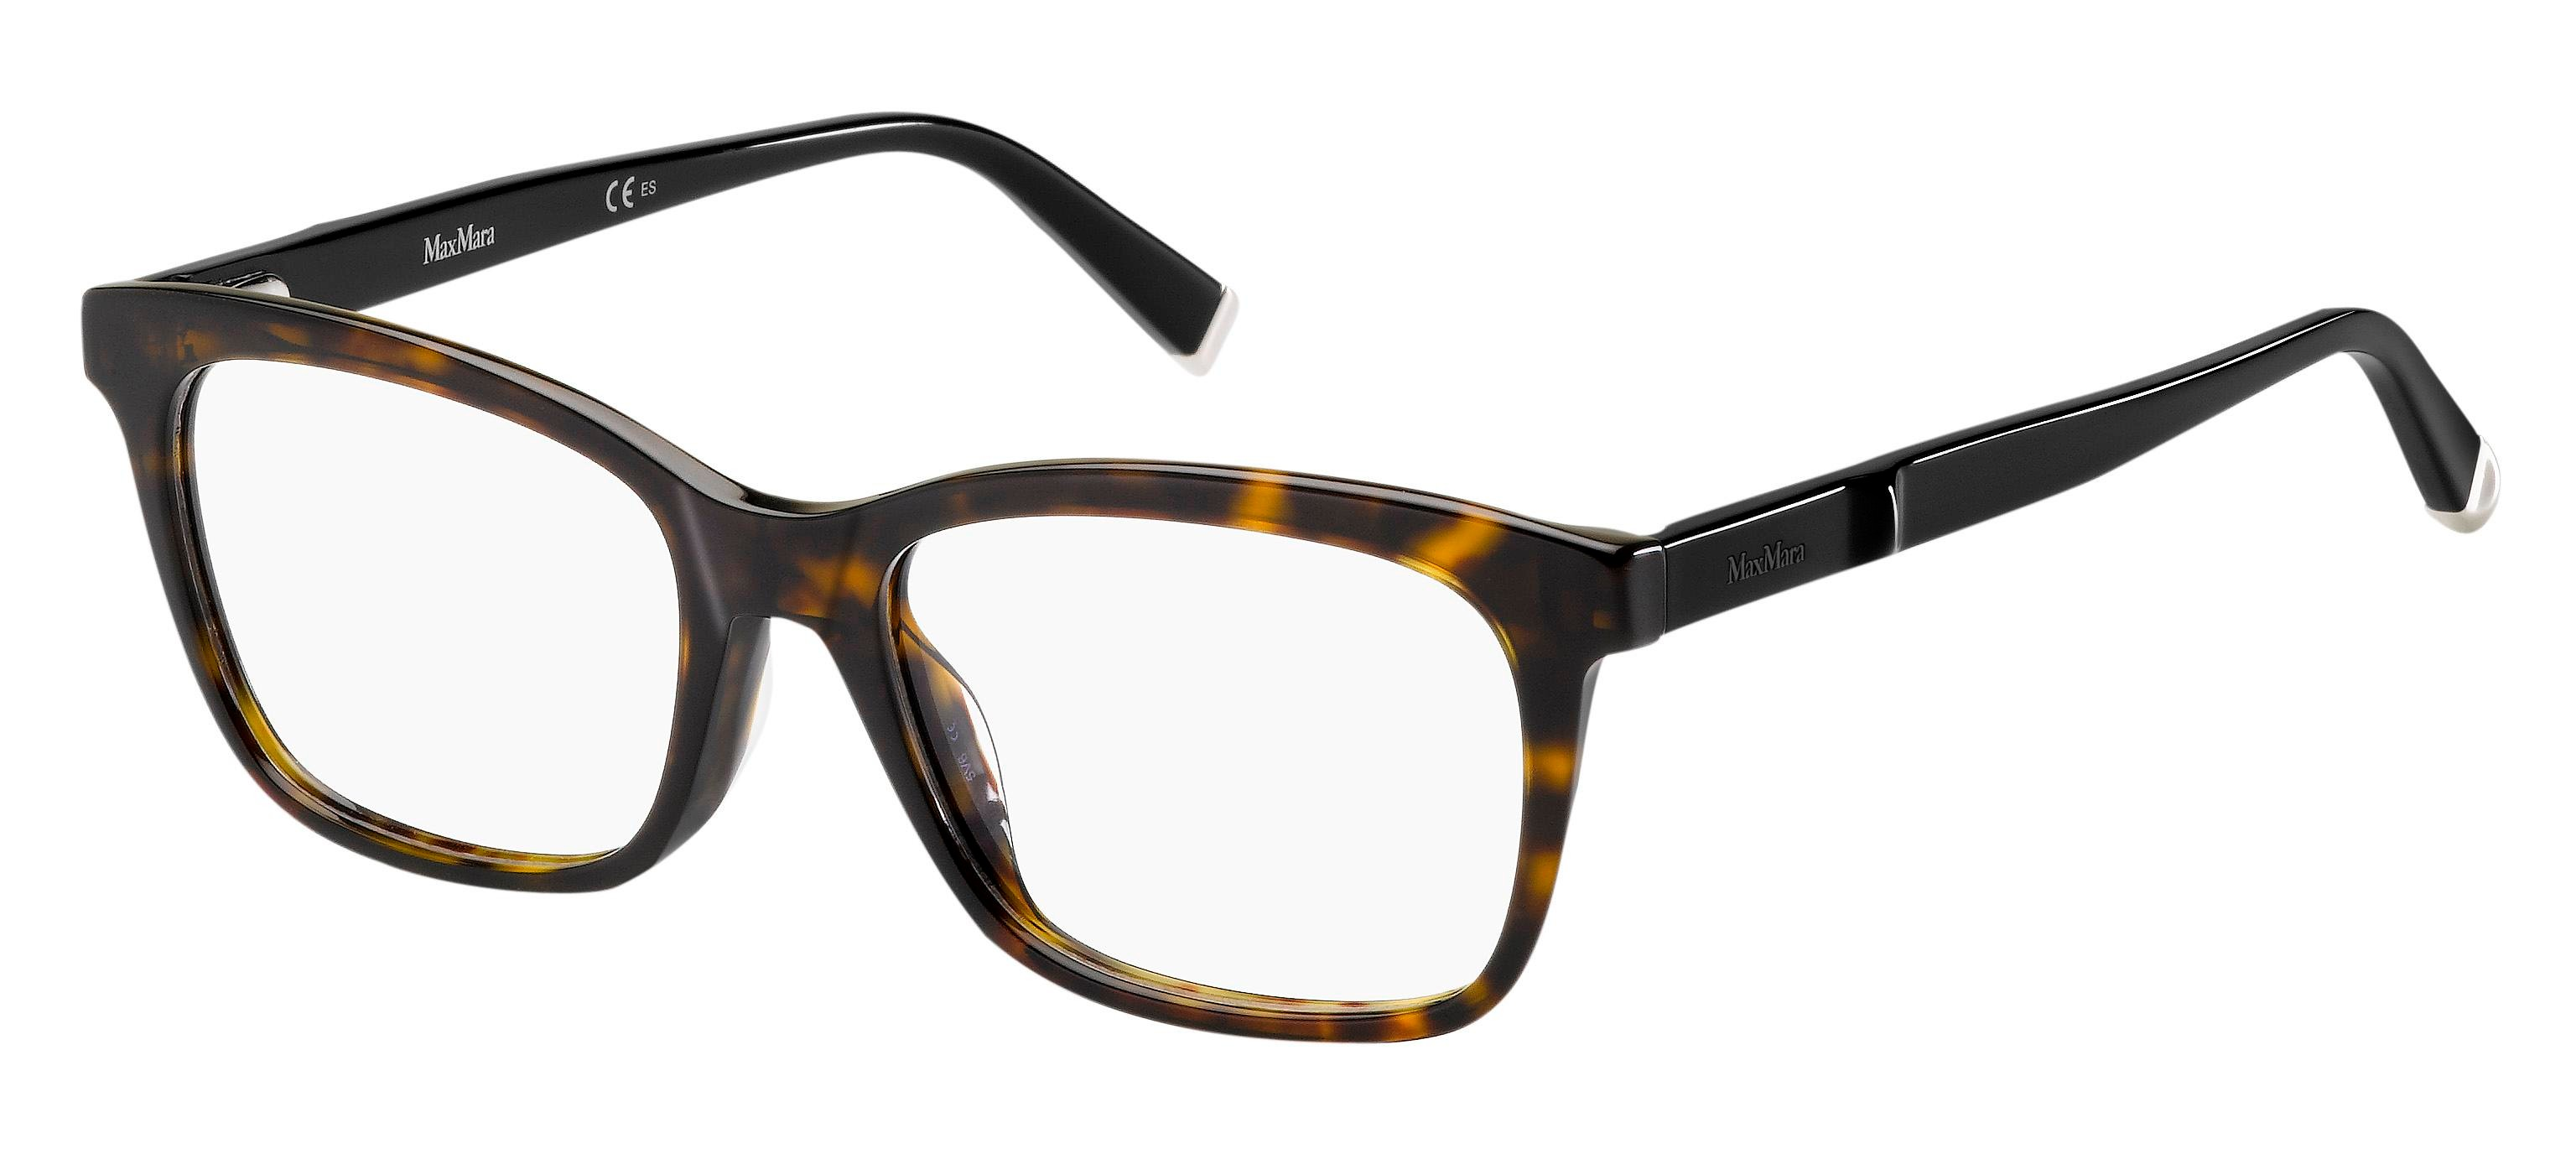 Max Mara eyeglasses MM 1274